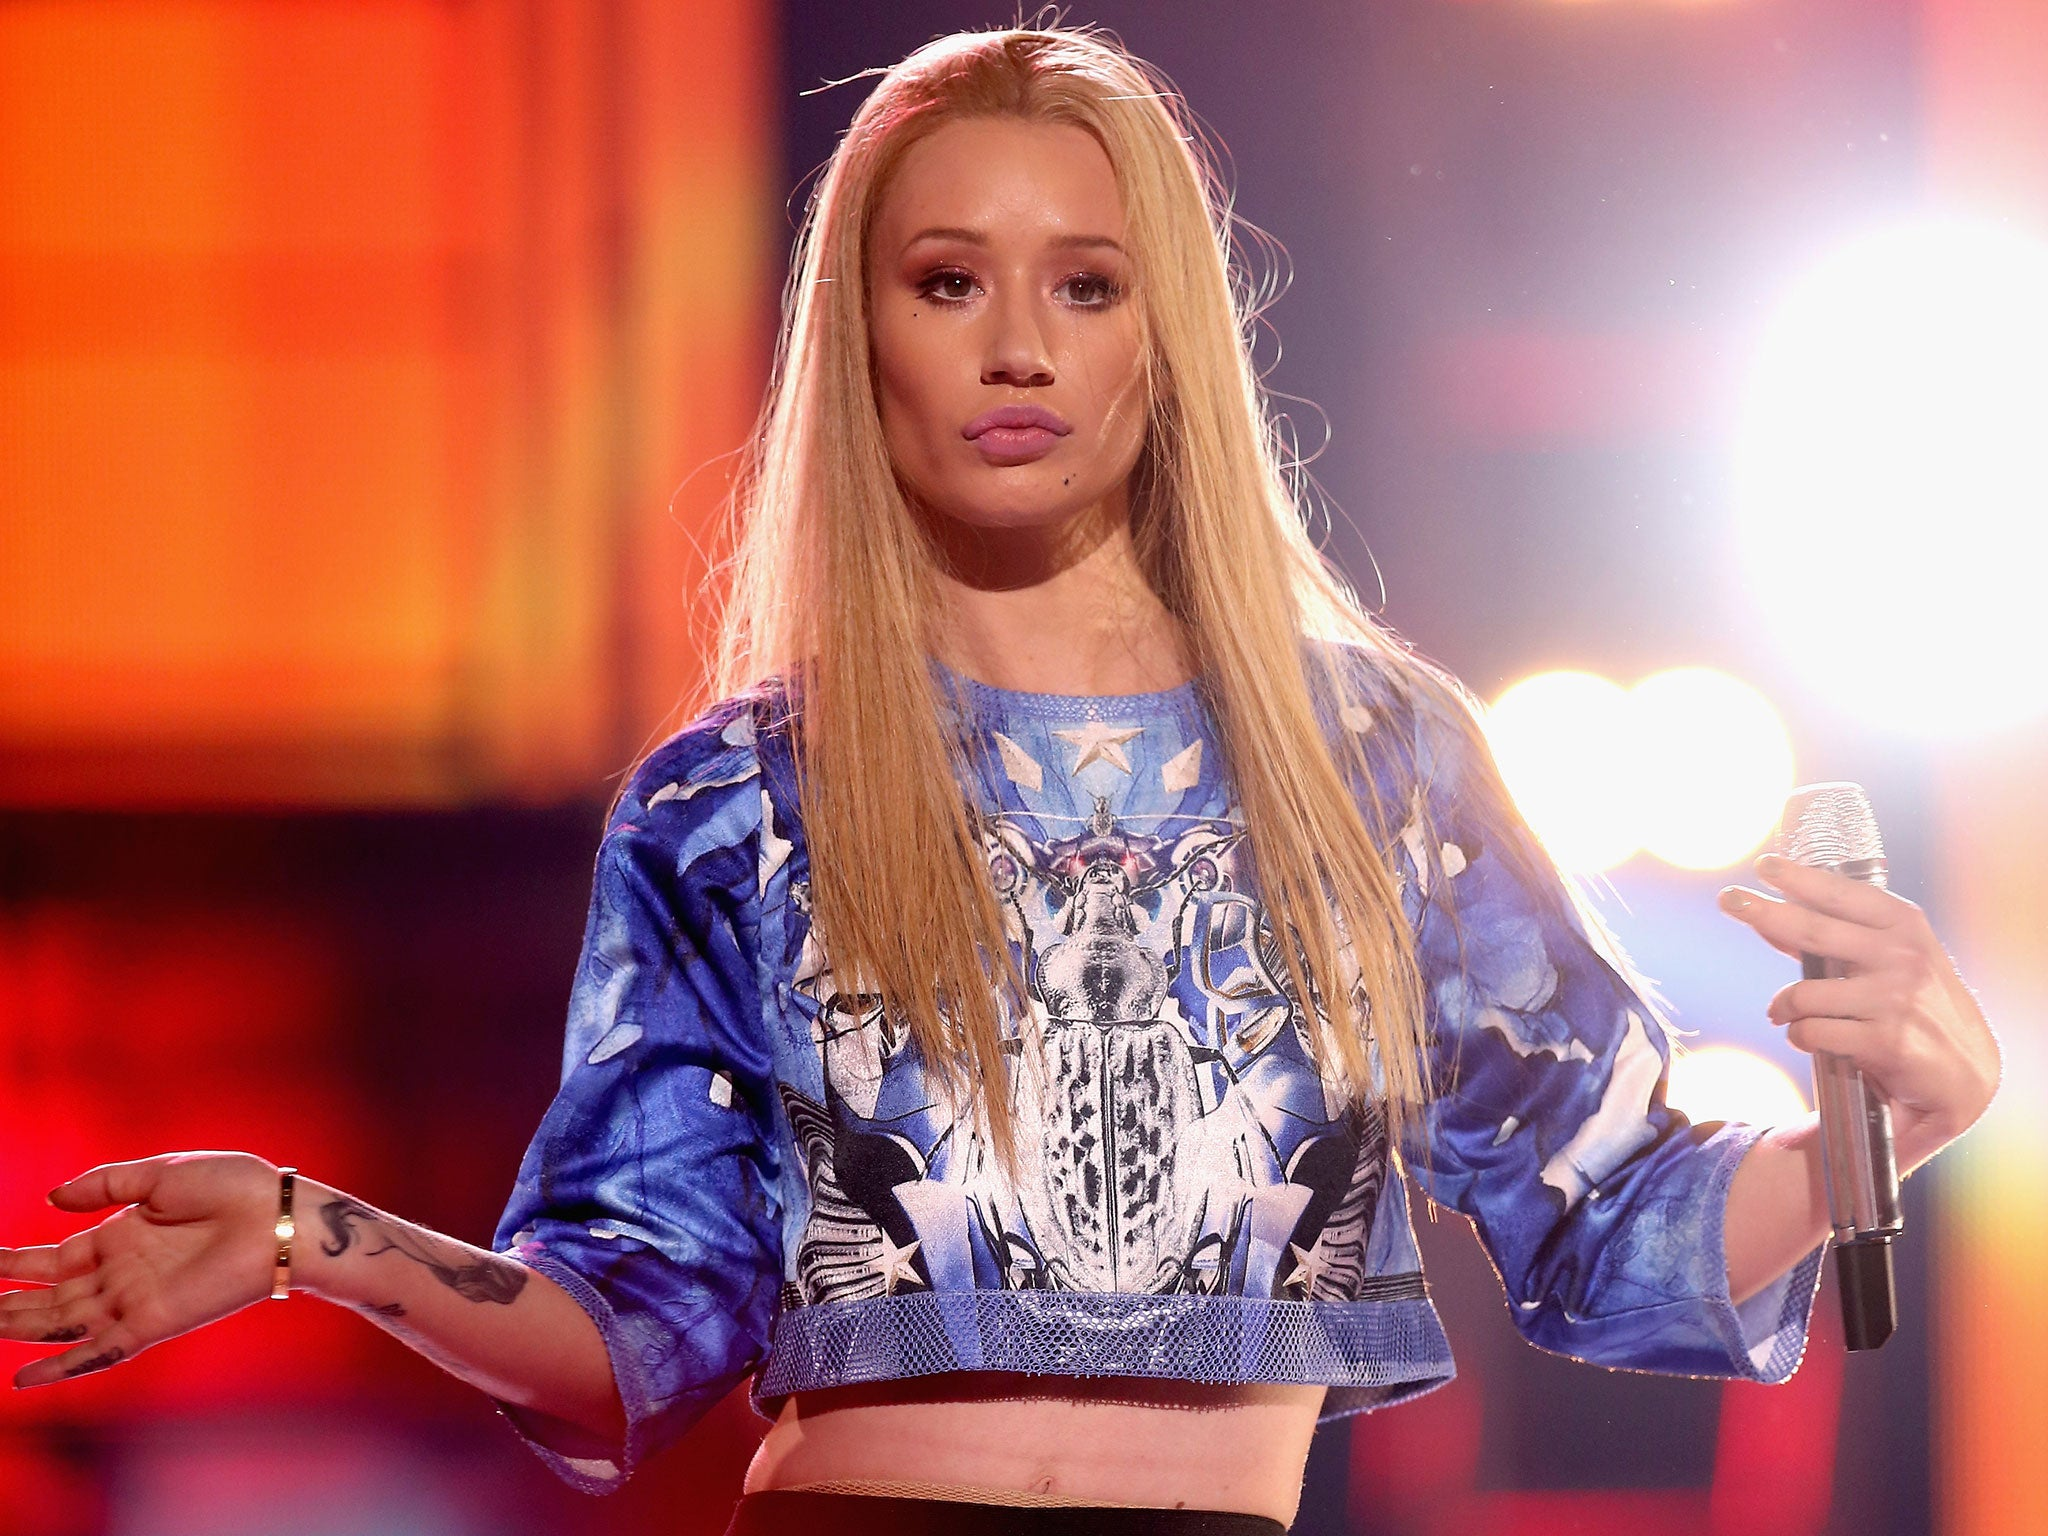 Hip hop is both racial and political, and for Iggy Azalea to suggest otherwise is insulting